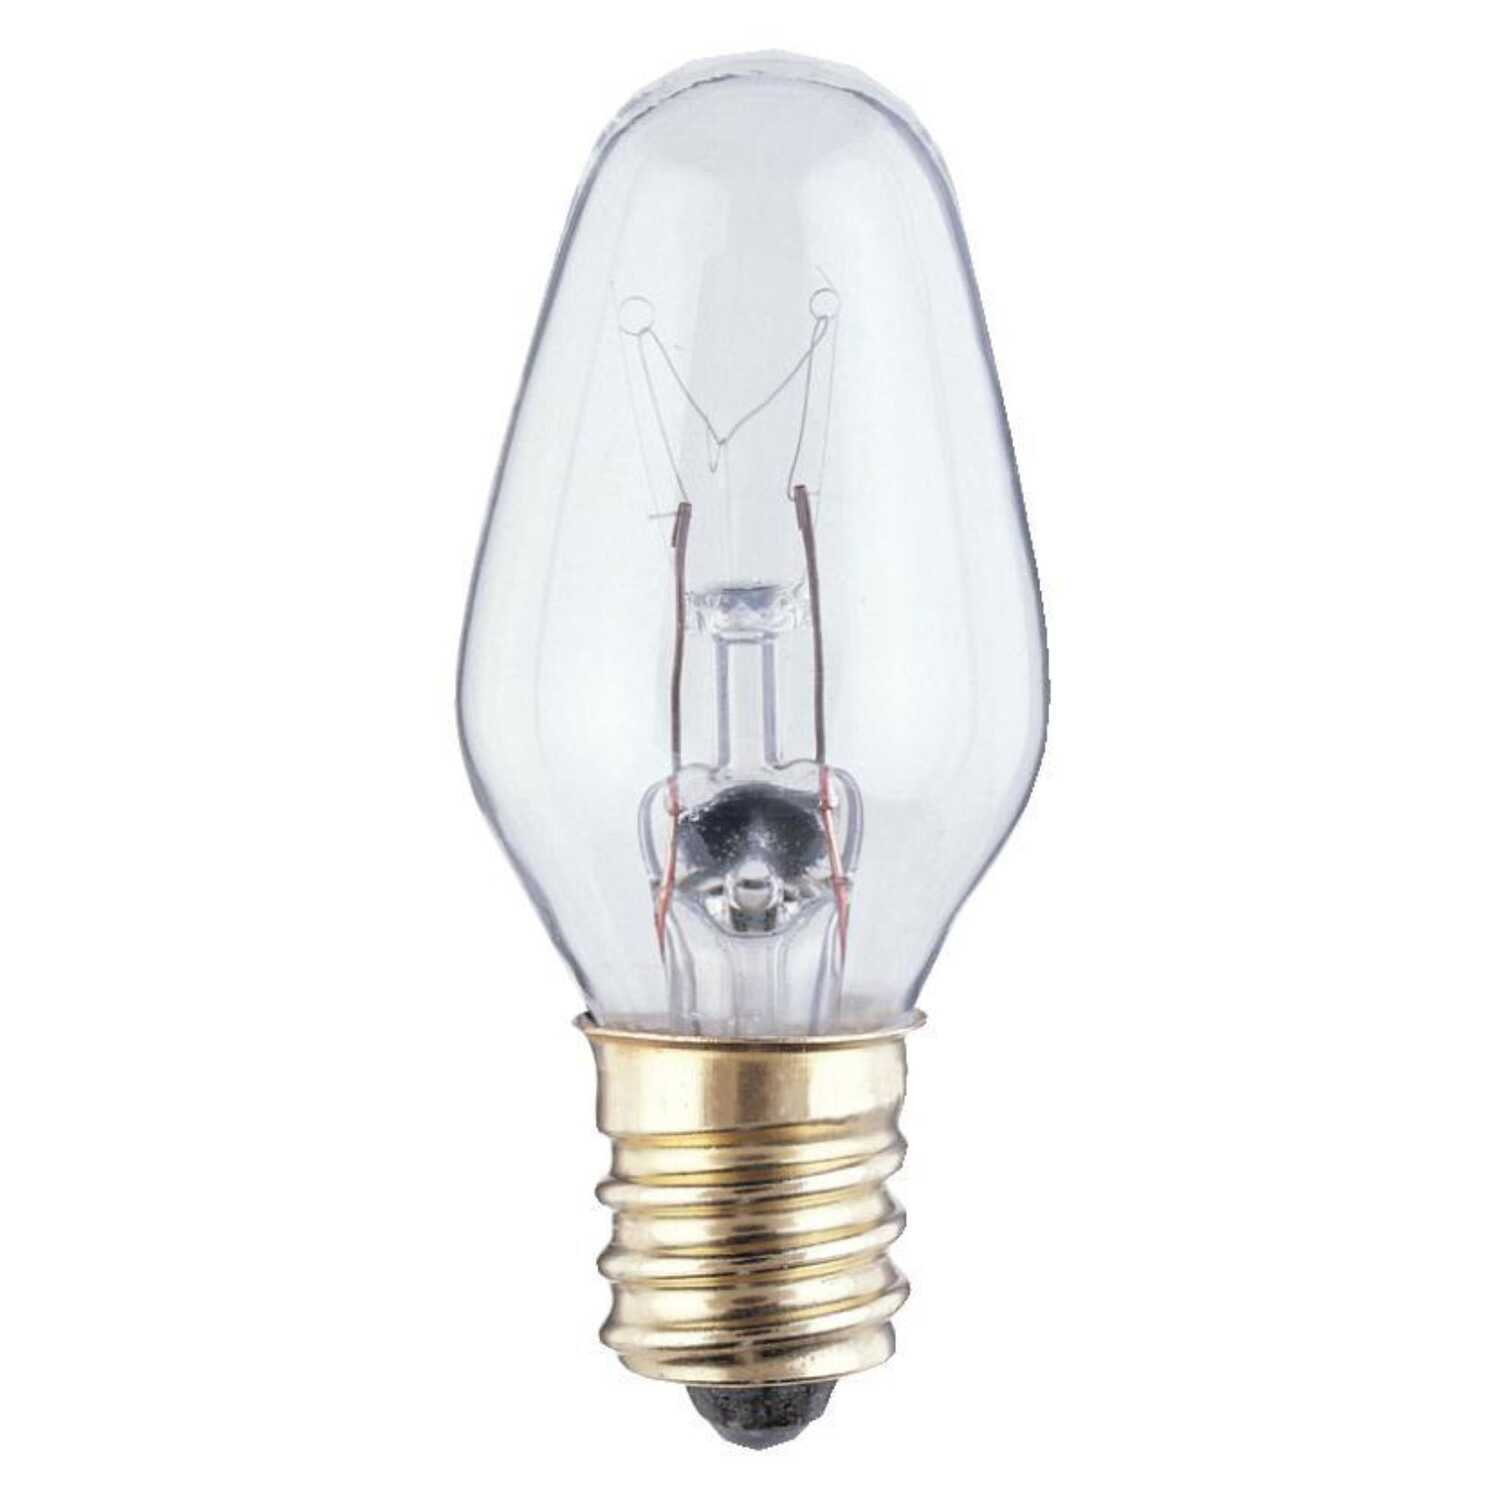 Westinghouse  4 watts C7  Incandescent Bulb  20 lumens White  Speciality  4 pk